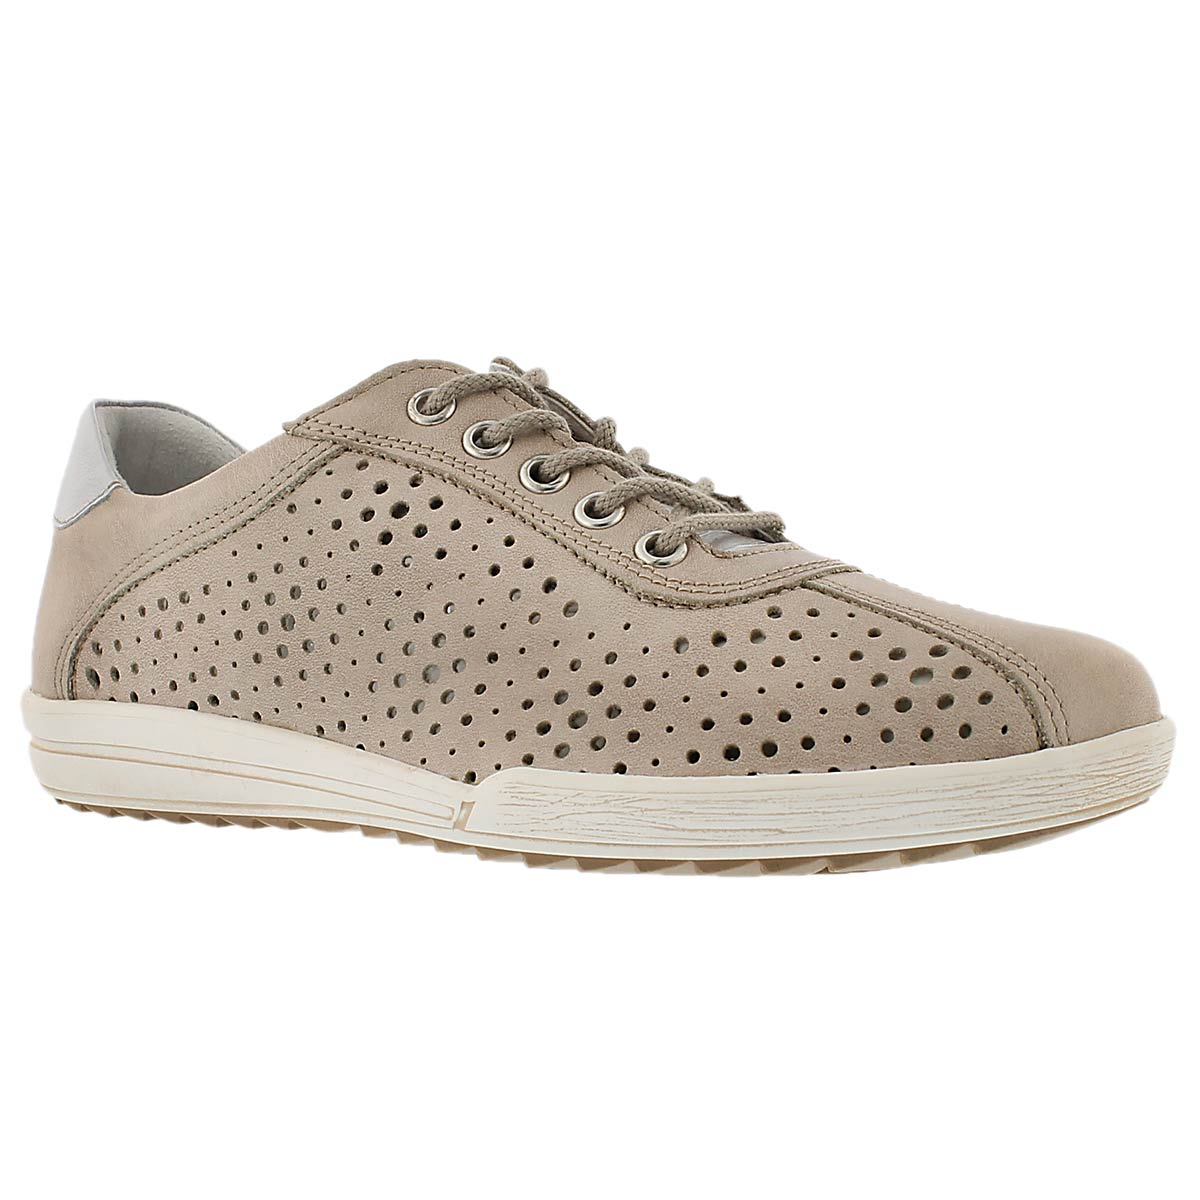 Lds Dany 49 beige perferated sneaker